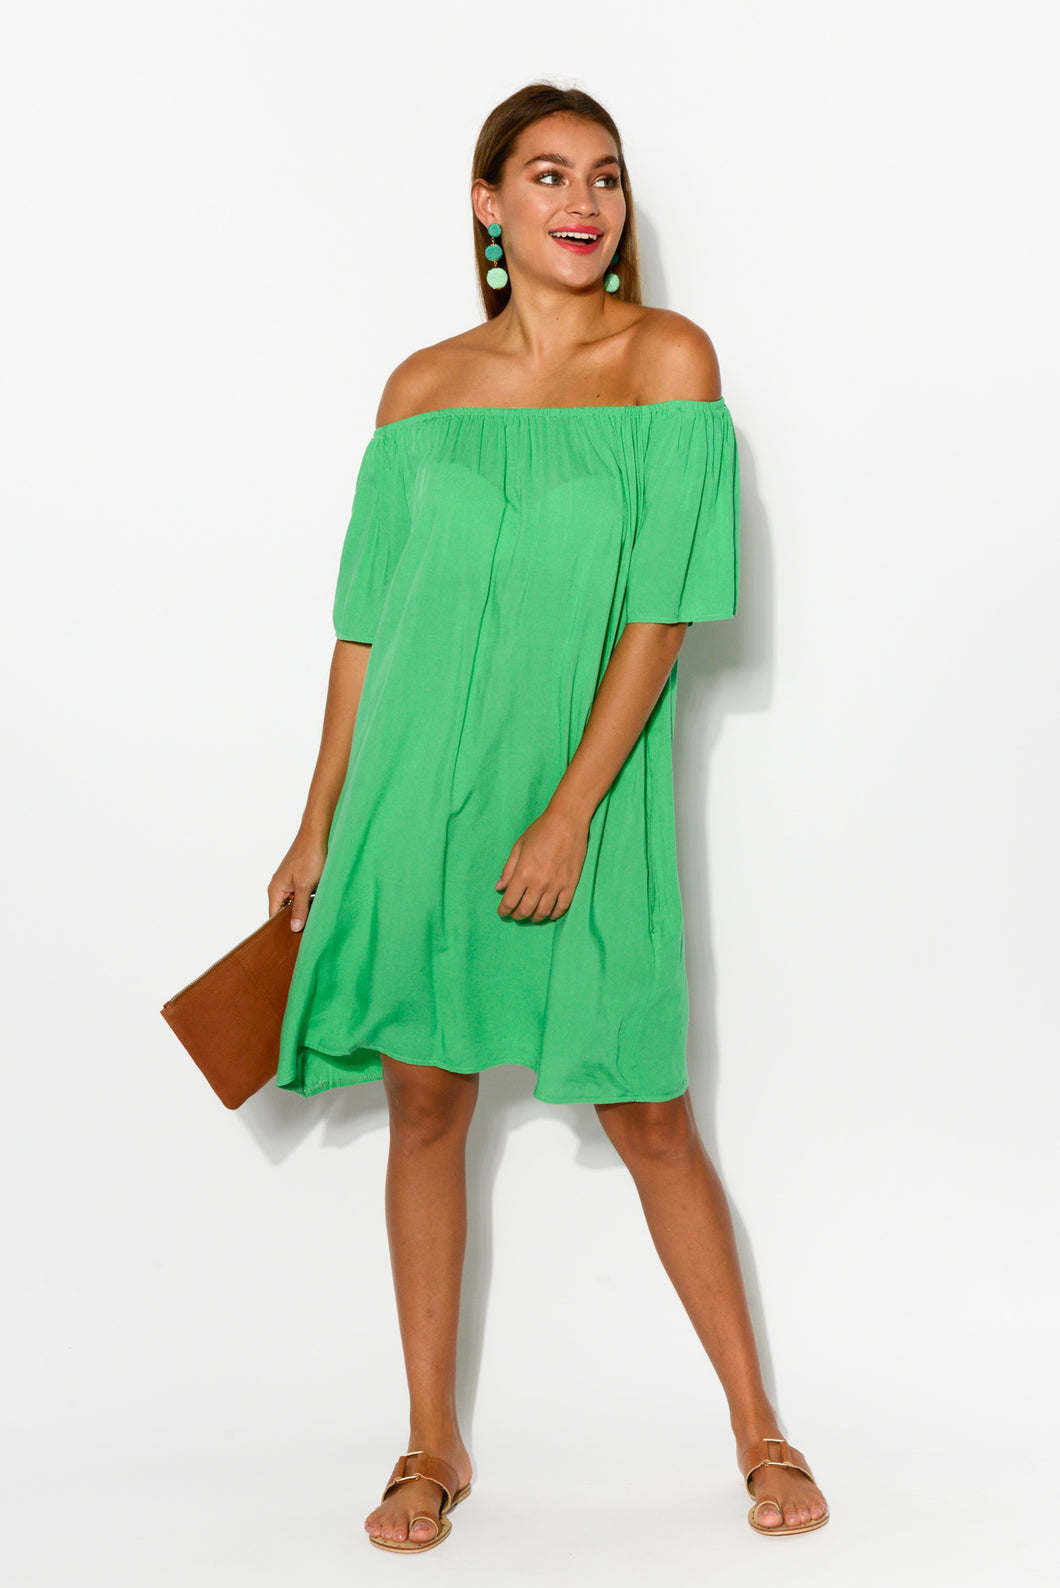 Lauren Green Off Shoulder Dress - Blue Bungalow